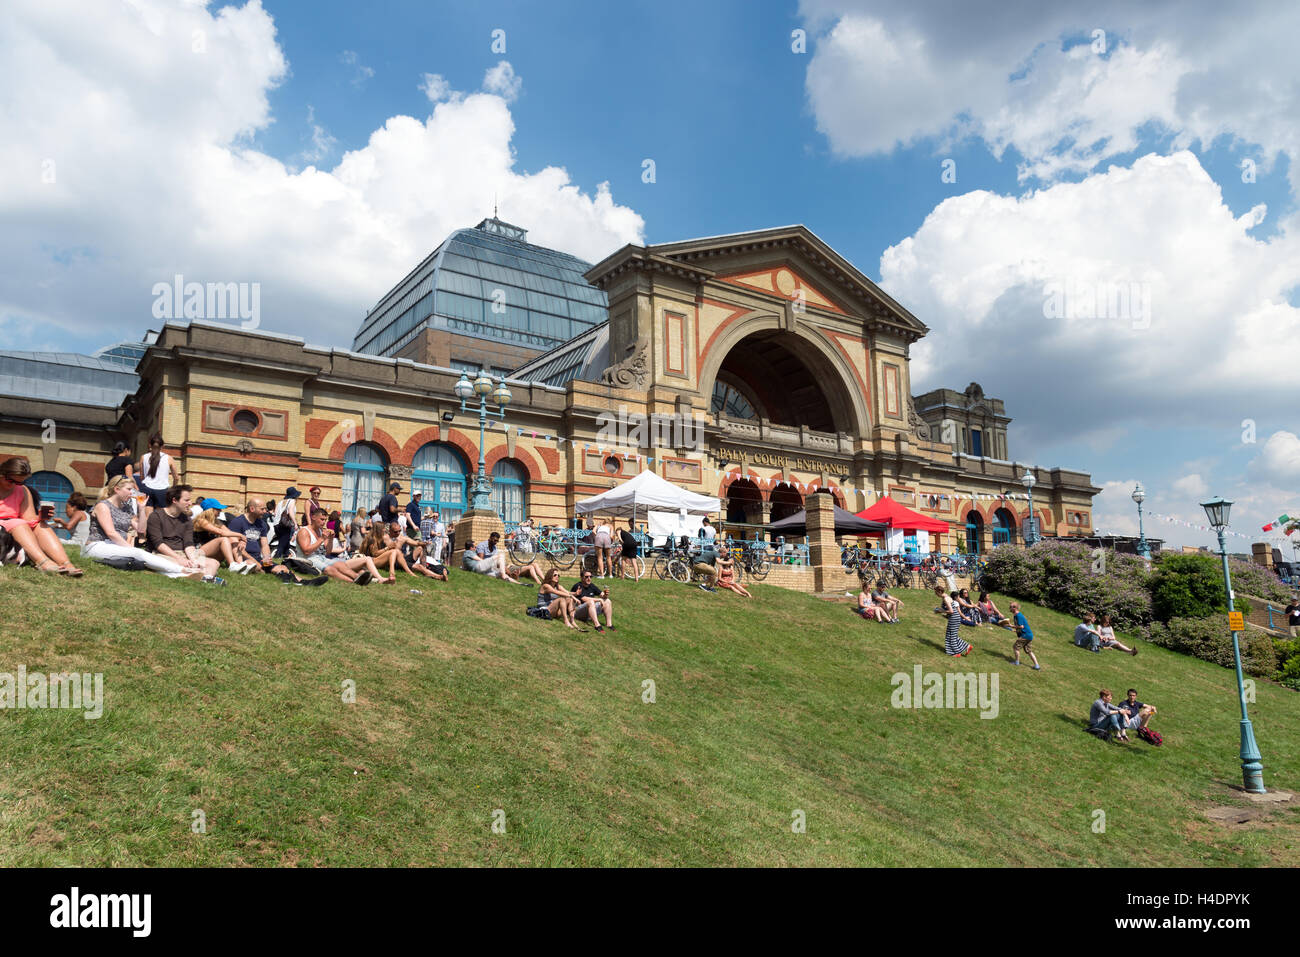 People sitting on grass outside Alexandra Palace during Alexandra Park Festival, Haringey, London, England, UK - Stock Image